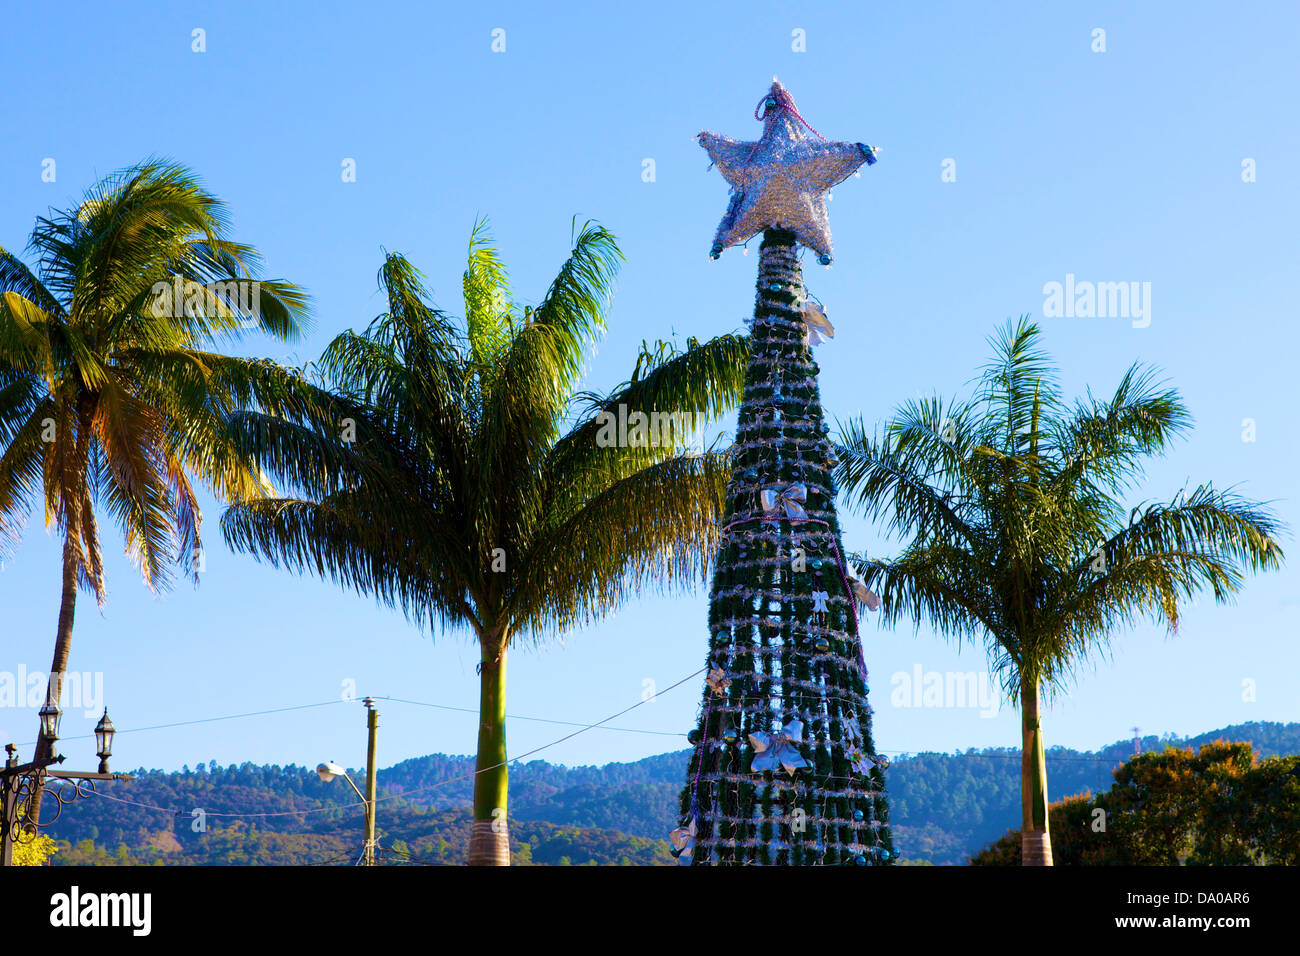 an artificial christmas tree with a large silver star on top between three palm trees - Christmas Palm Tree Pictures